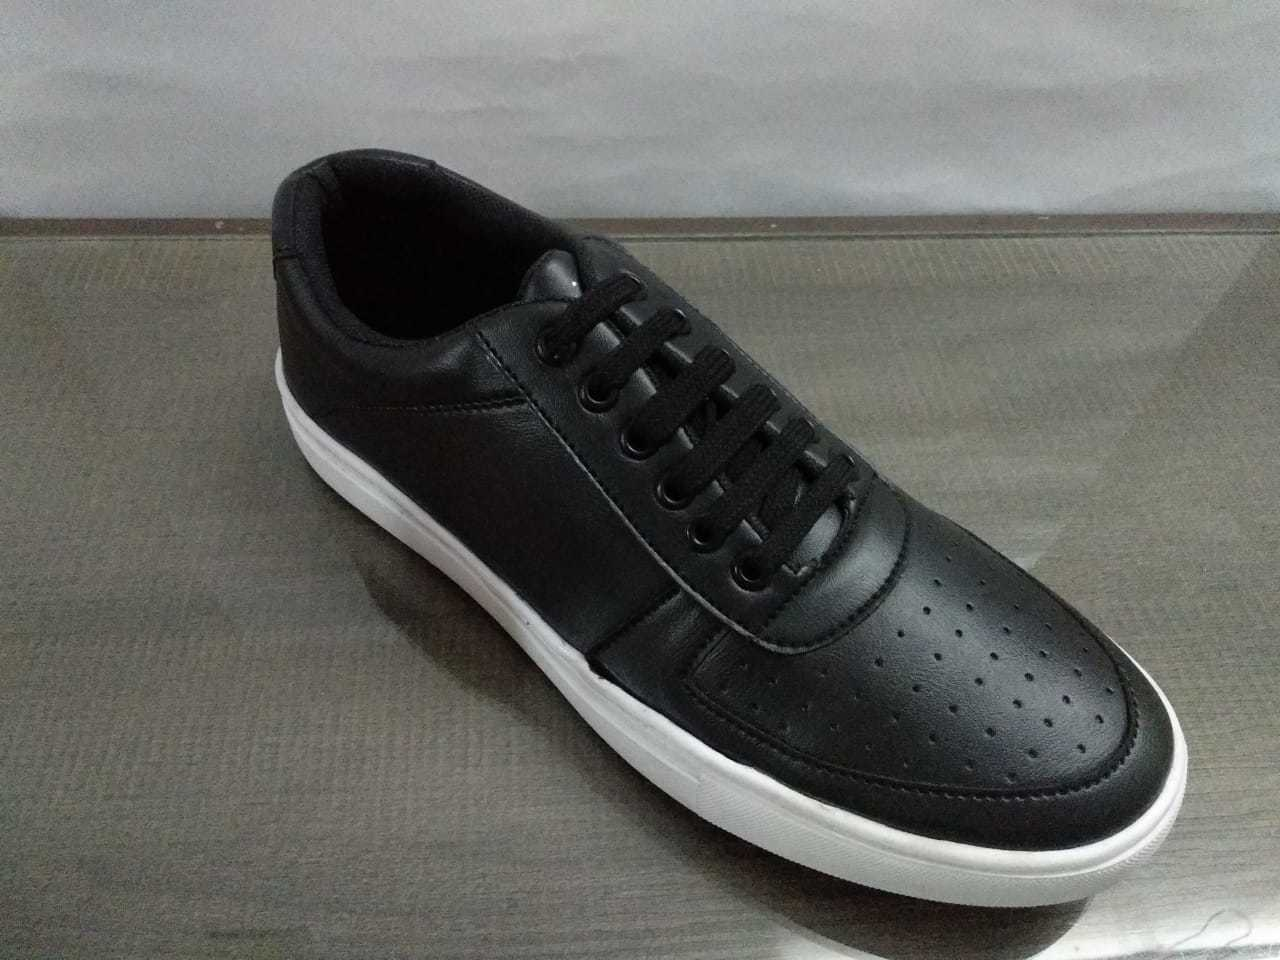 STYLISH FASHIONABLE CASUAL SHOES FOR MEN'S ON TPR SOLE